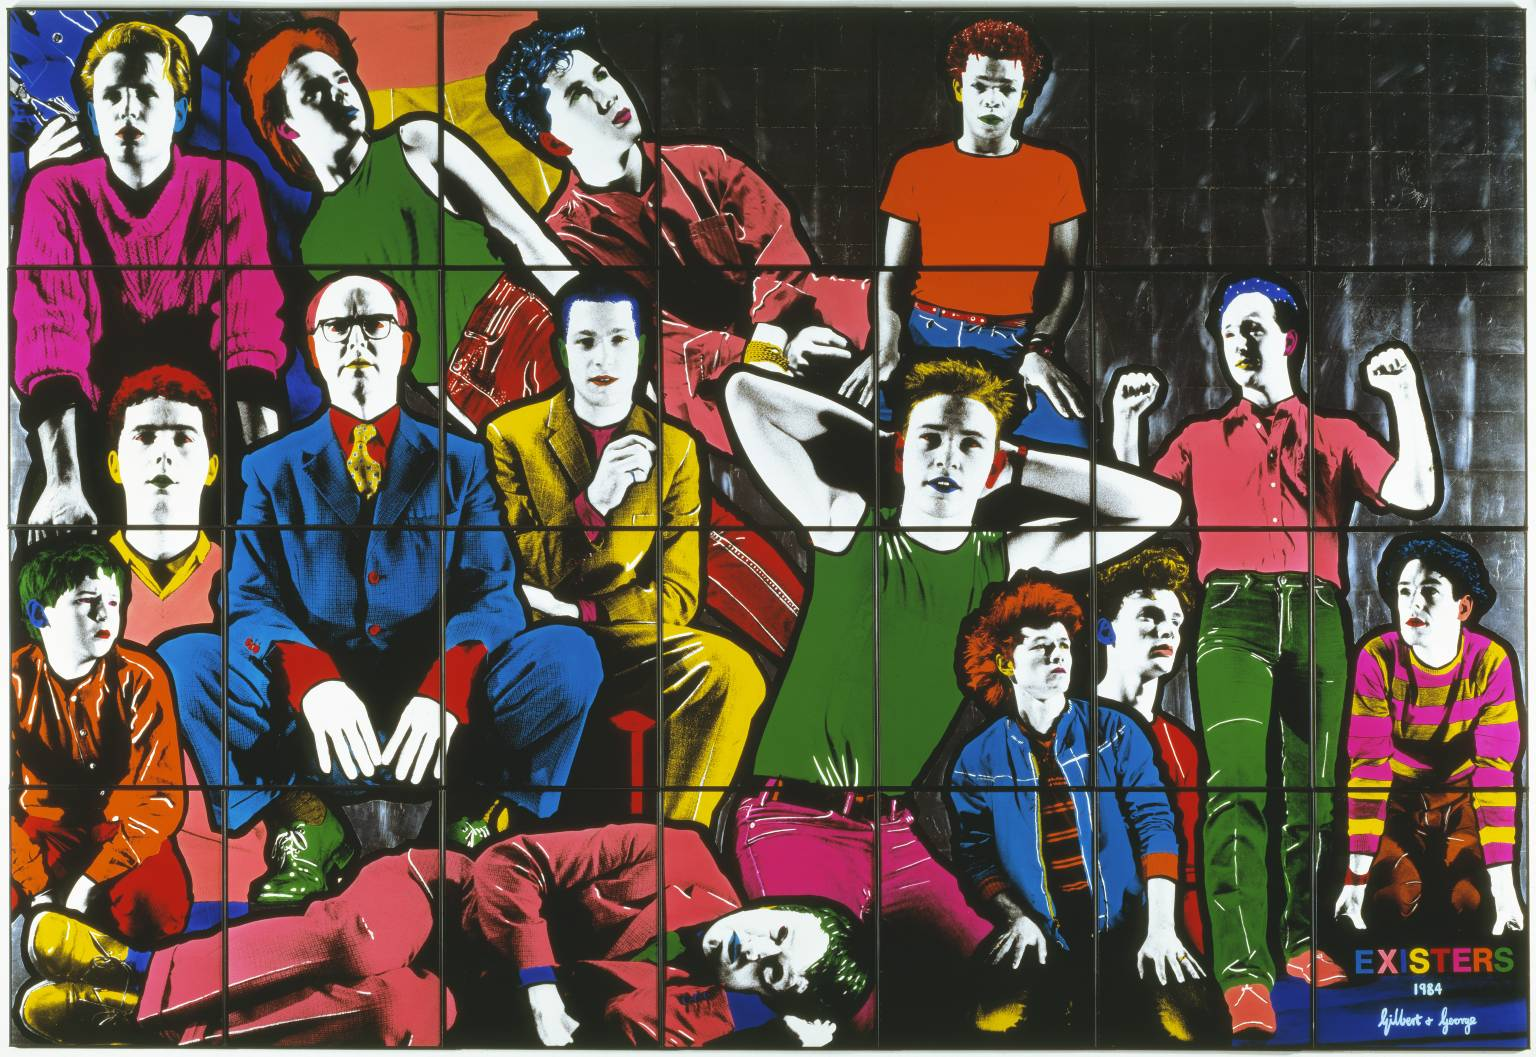 Gilbert and George's Existers, part of the Anthony d'Offay Collection